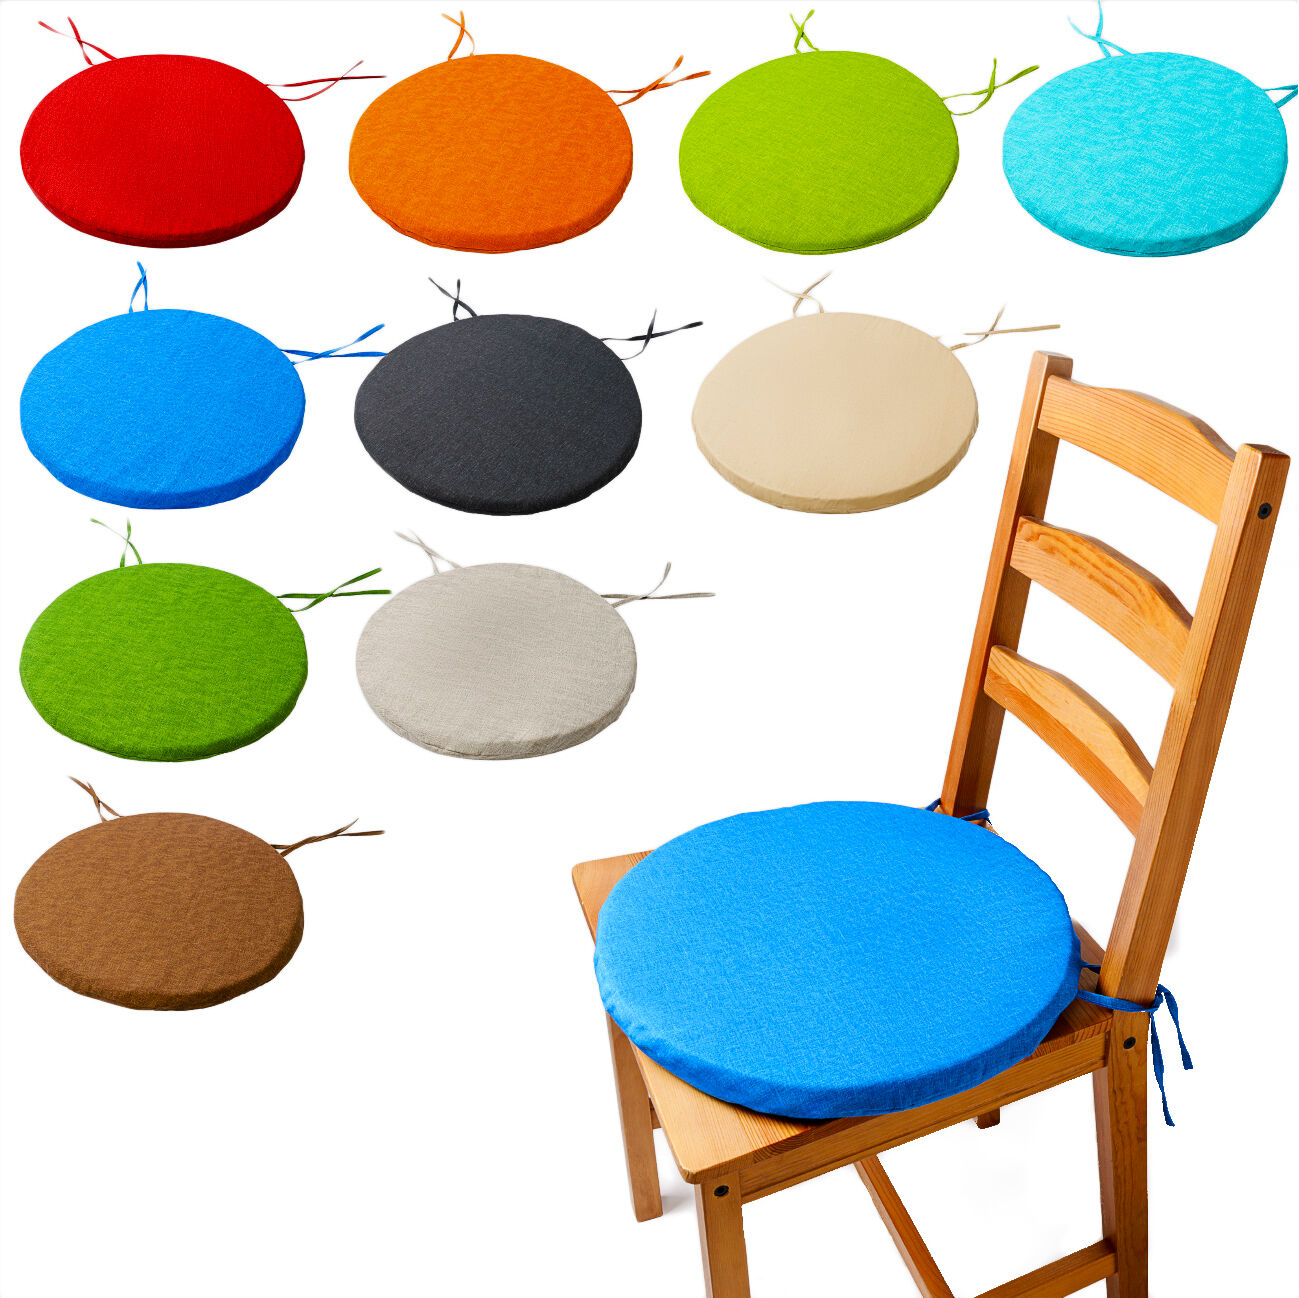 Picture of: 30cm Round Circular Chair Cushion Seat Pads Removable Cover Bistro Office Home For Sale Ebay